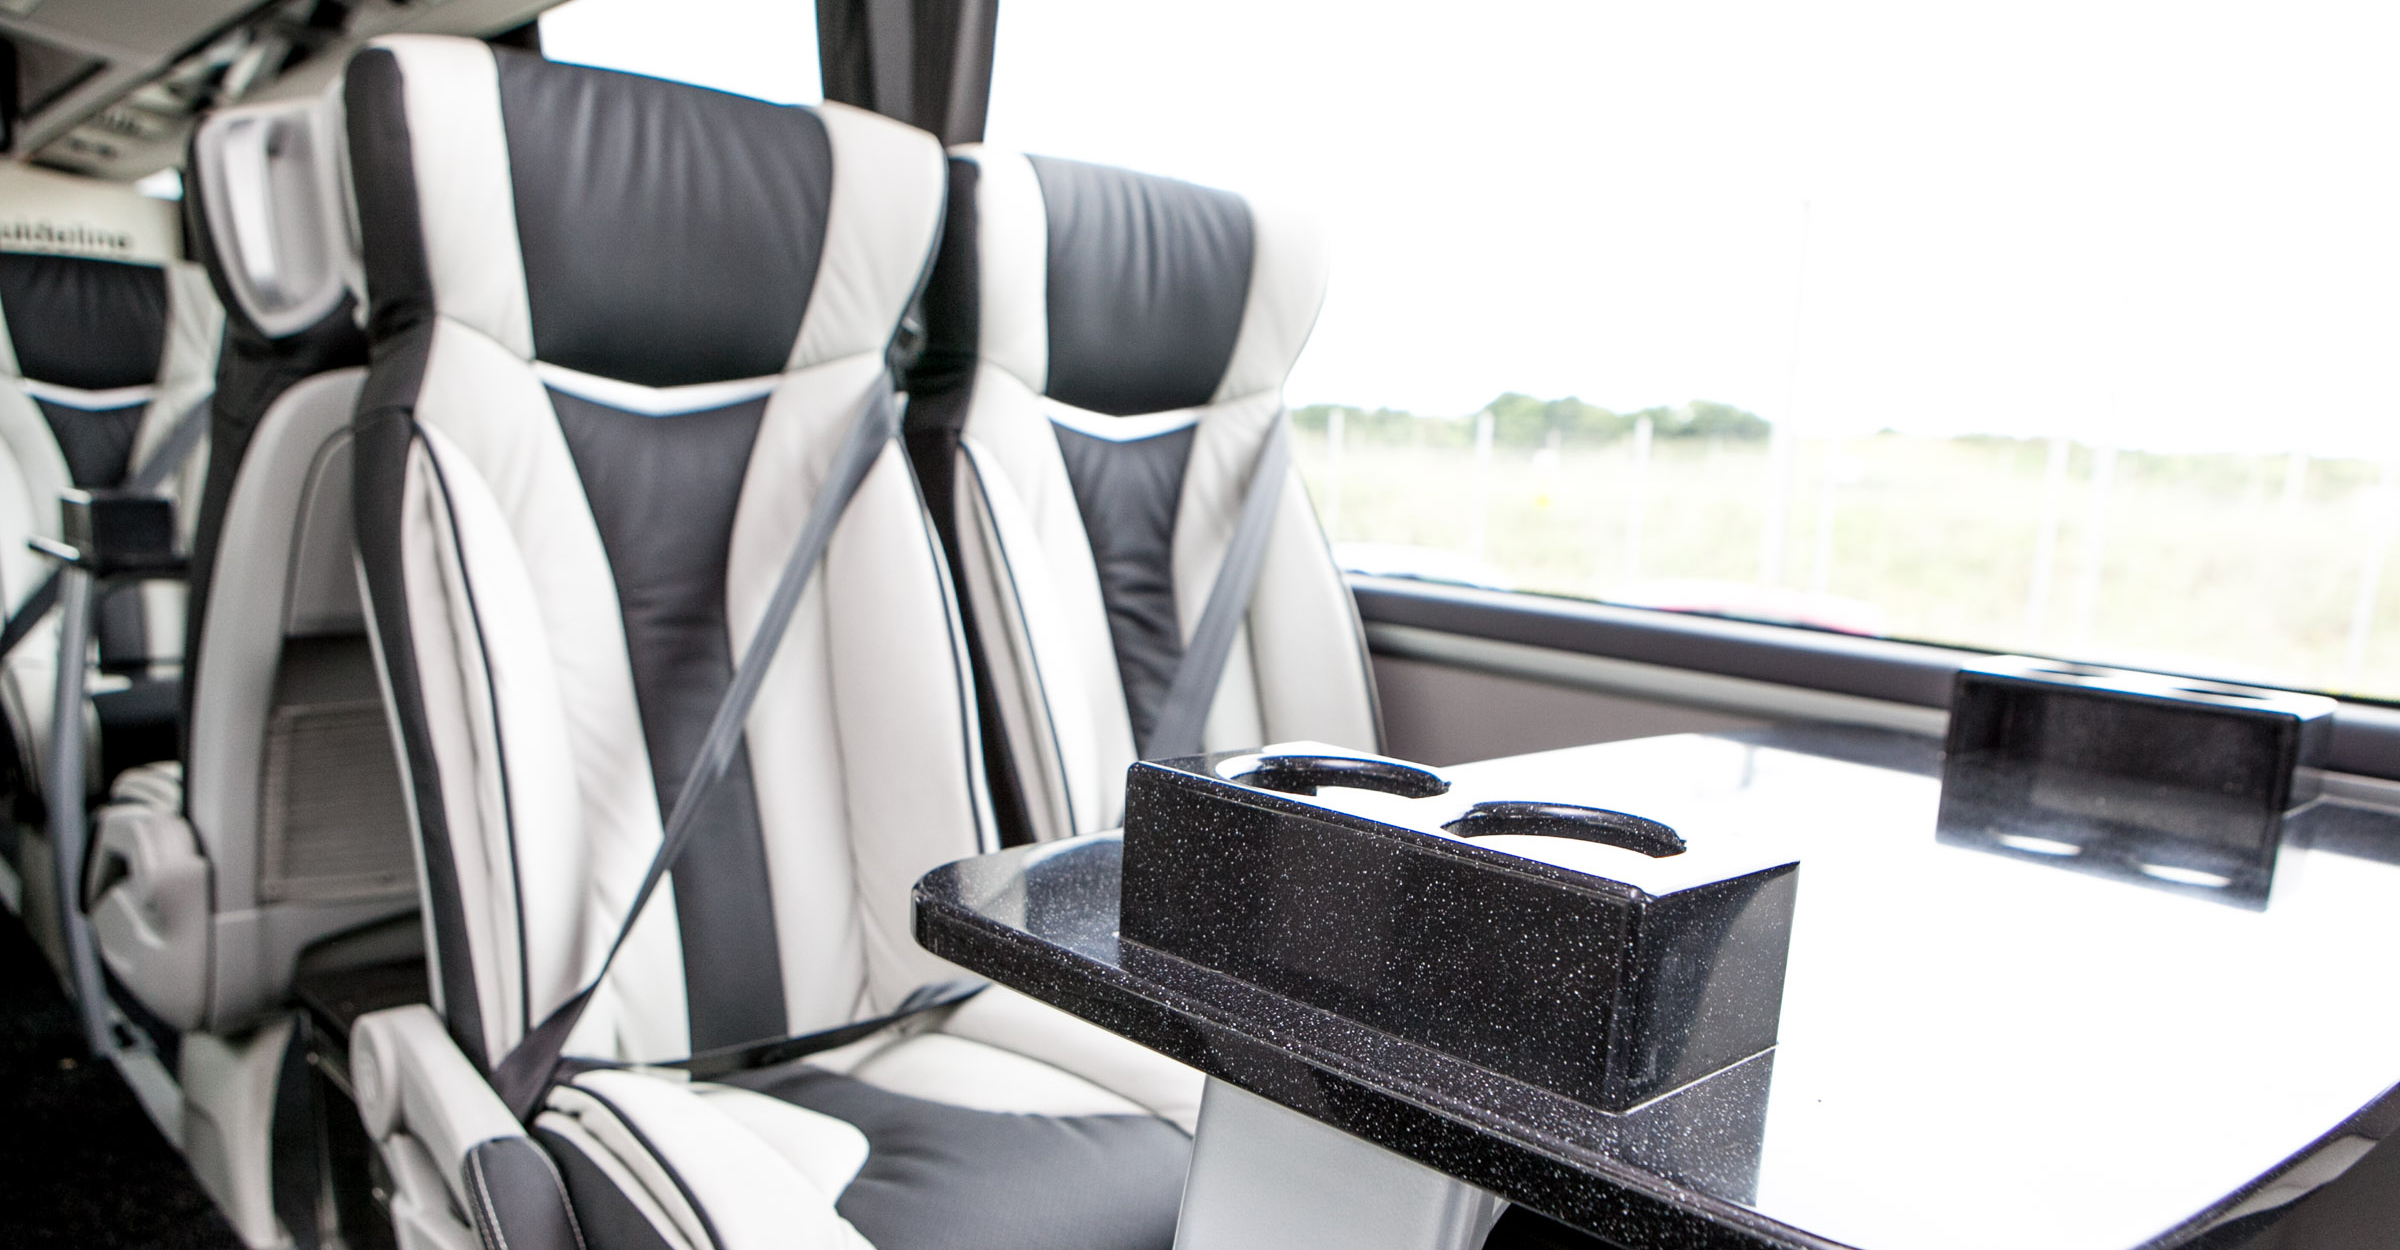 An image of the Interior of a luxury coach.